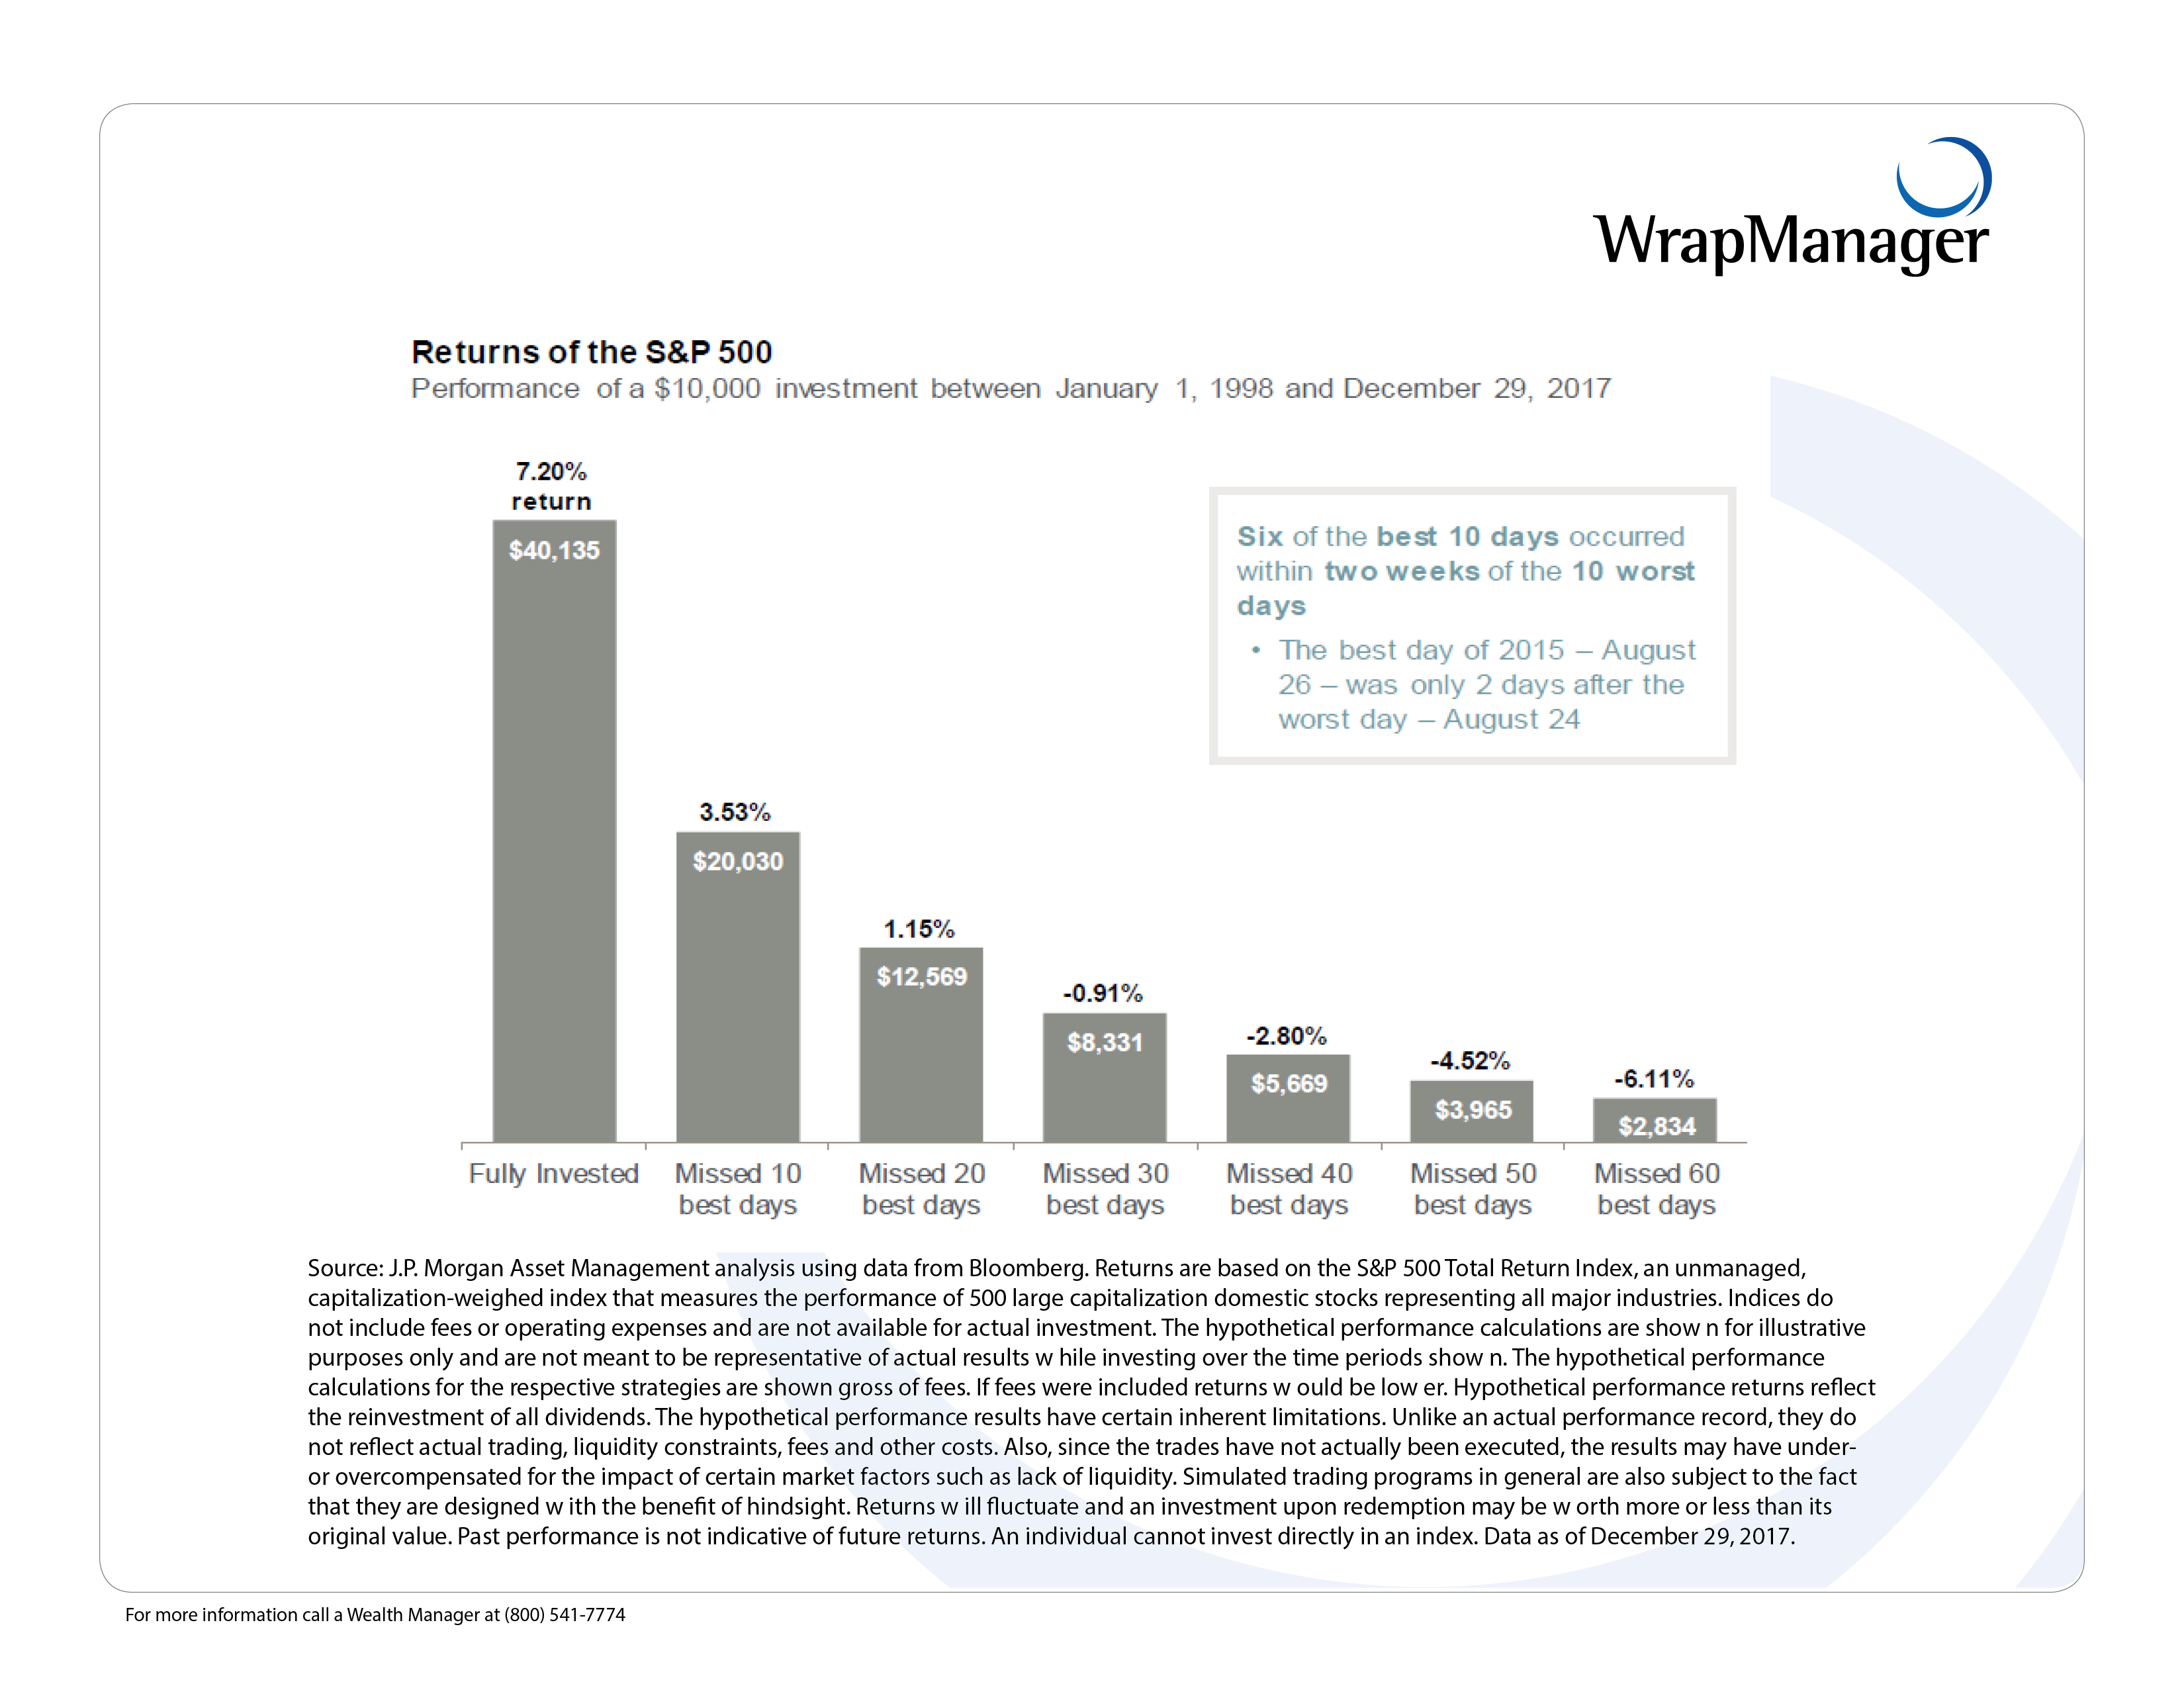 JP Morgan Impact of Being Out of the Market